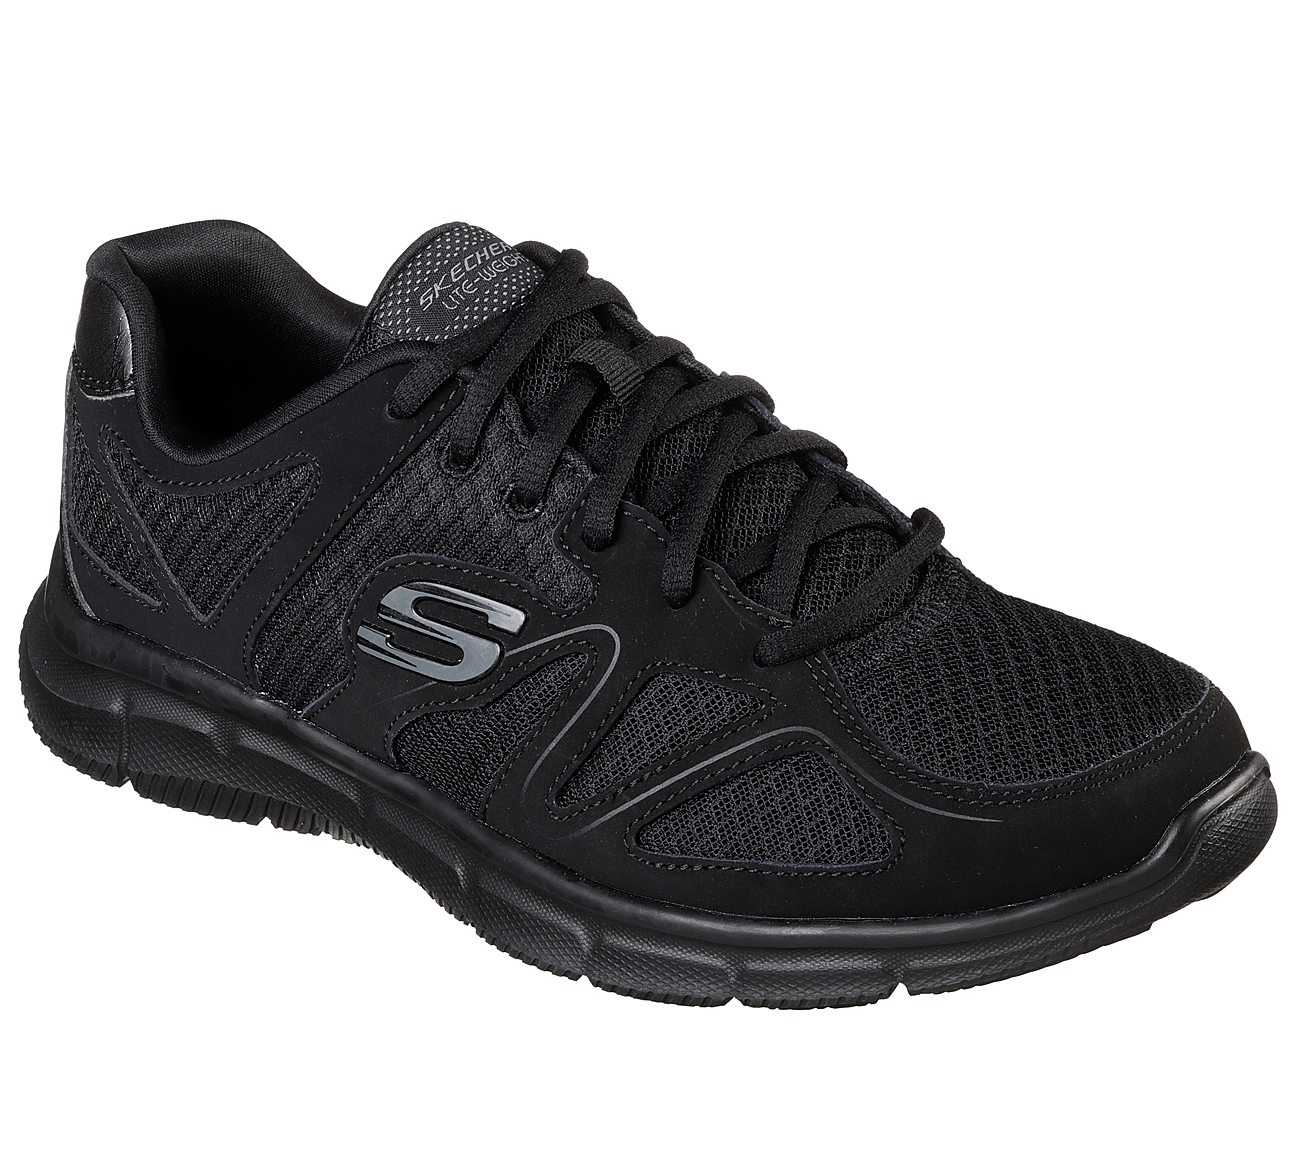 7736a8d0ec21 Buy SKECHERS Satisfaction - Flash Point Sport Shoes only  55.00